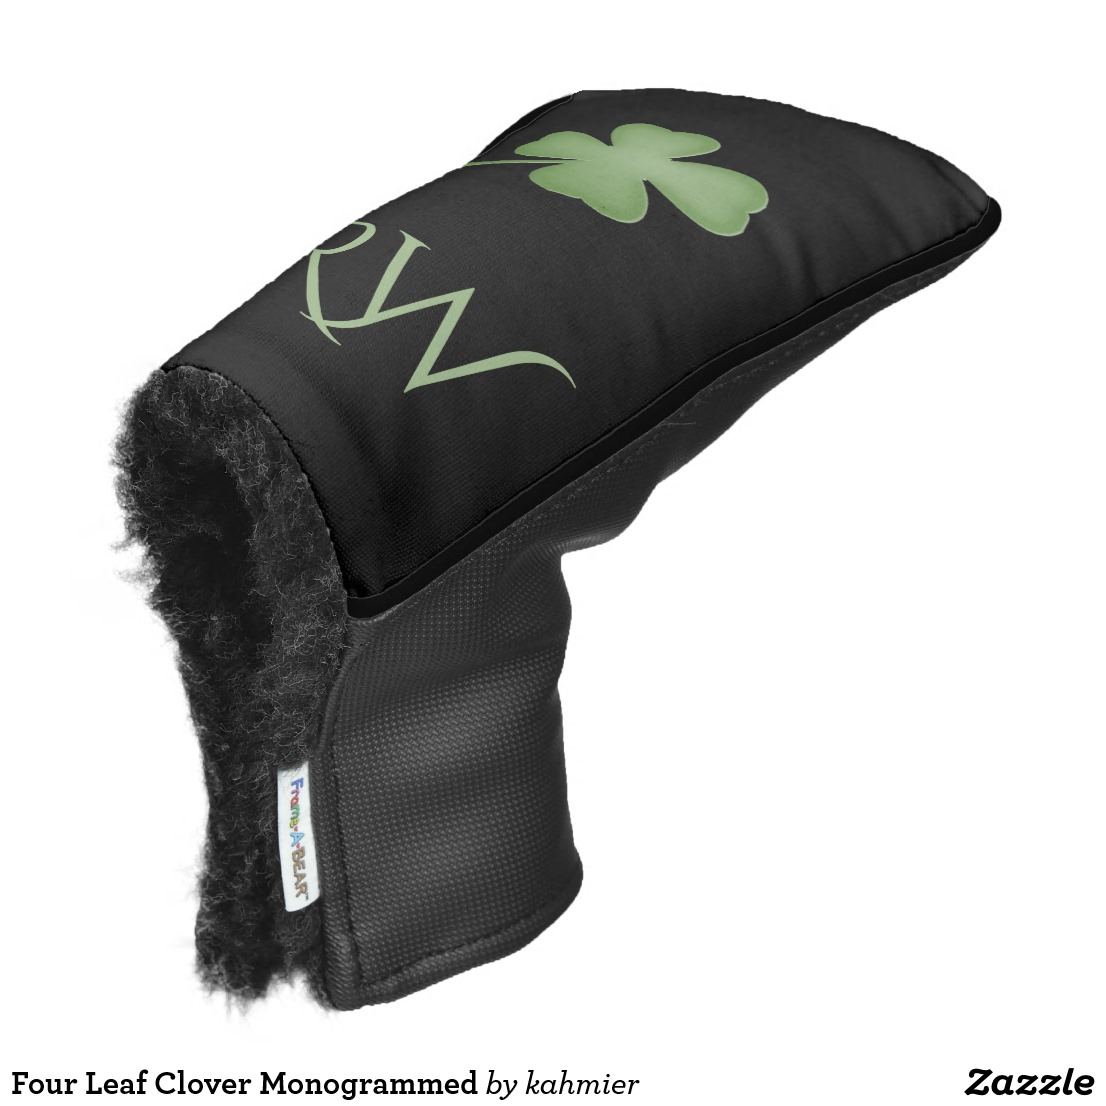 Four Leaf Clover Monogrammed Golf Head Cover